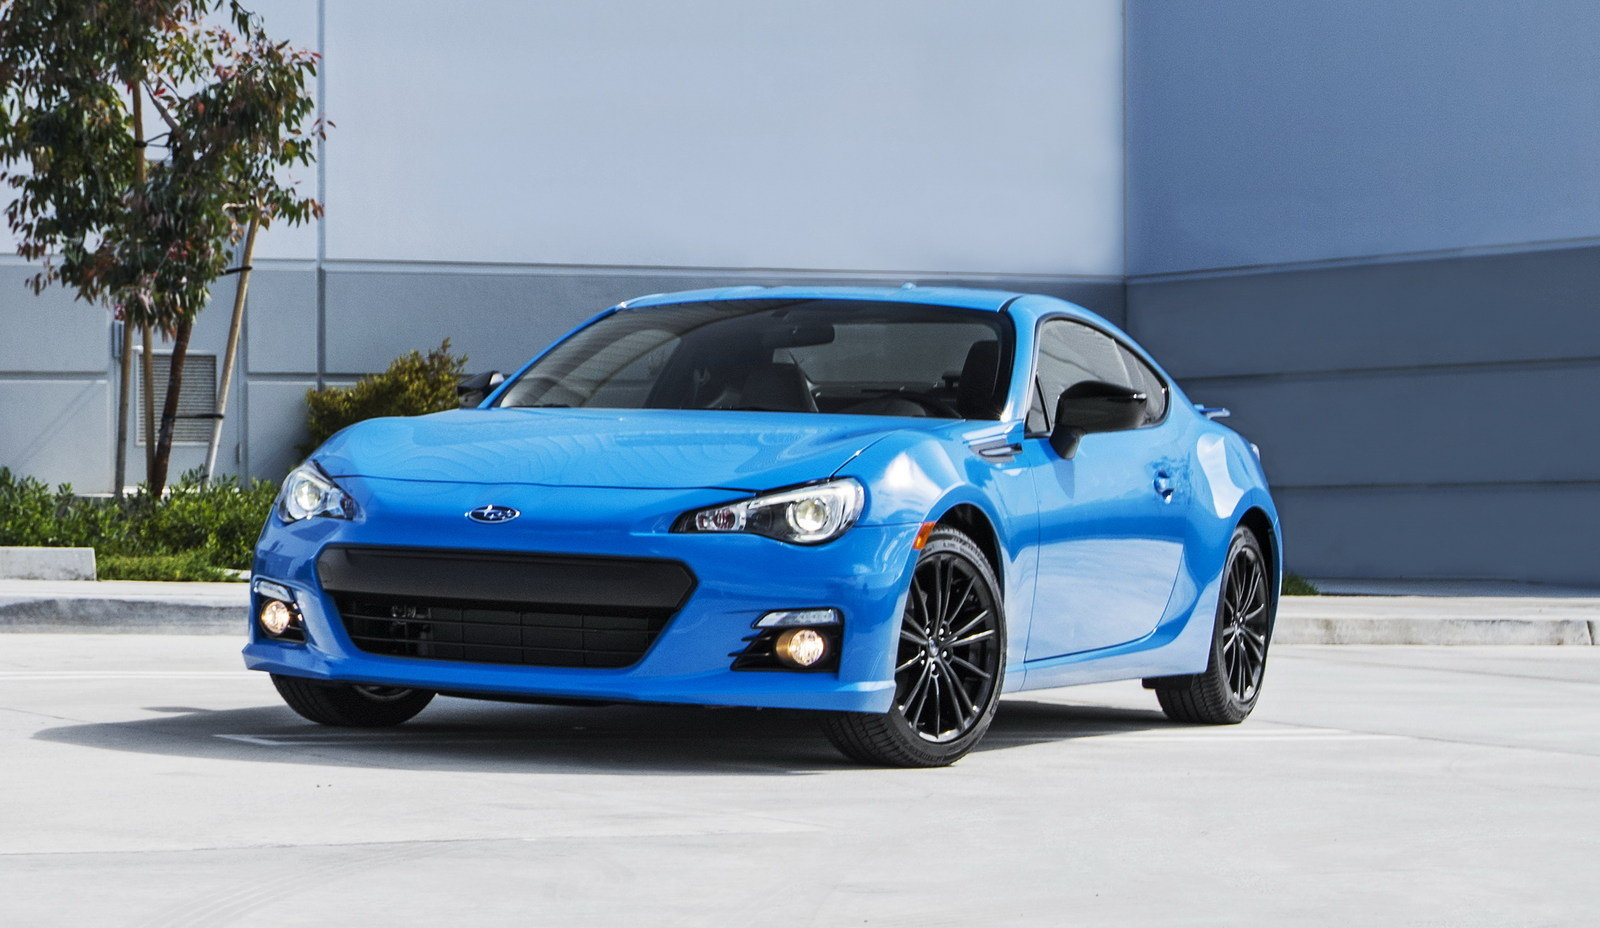 2016 subaru series hyperblue brz picture 635824 car review top speed. Black Bedroom Furniture Sets. Home Design Ideas